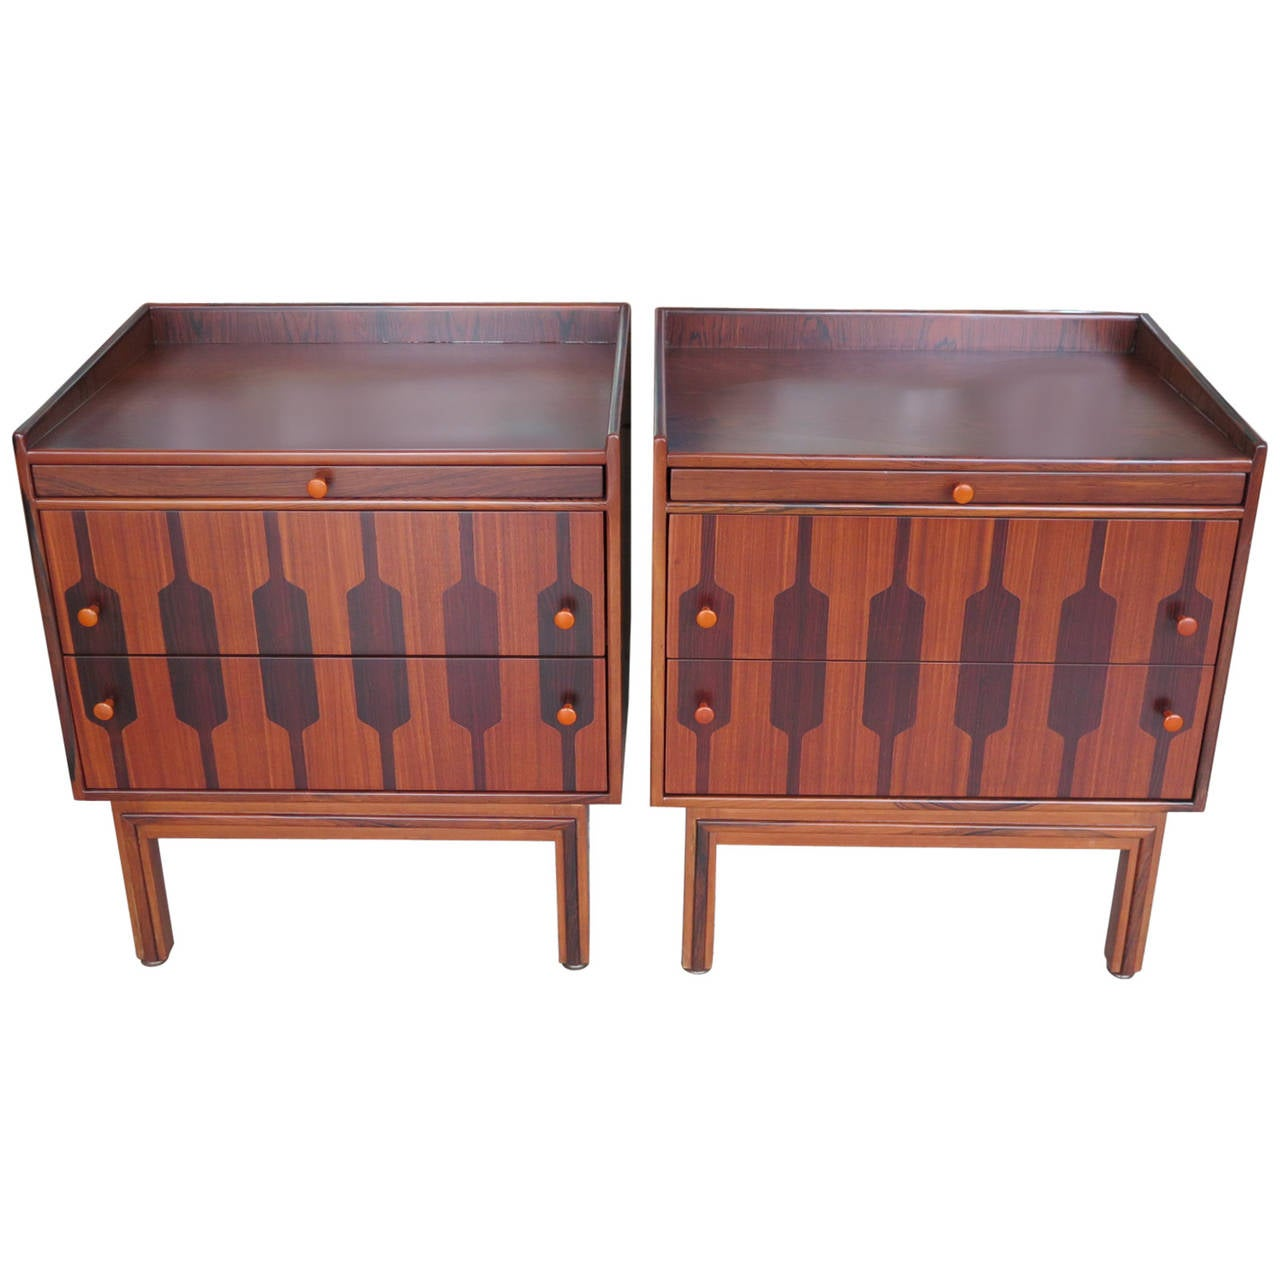 Pair Of Rom Weber Rosewood Nightstands At 1stdibs. Full resolution‎  image, nominally Width 1280 Height 1280 pixels, image with #964835.